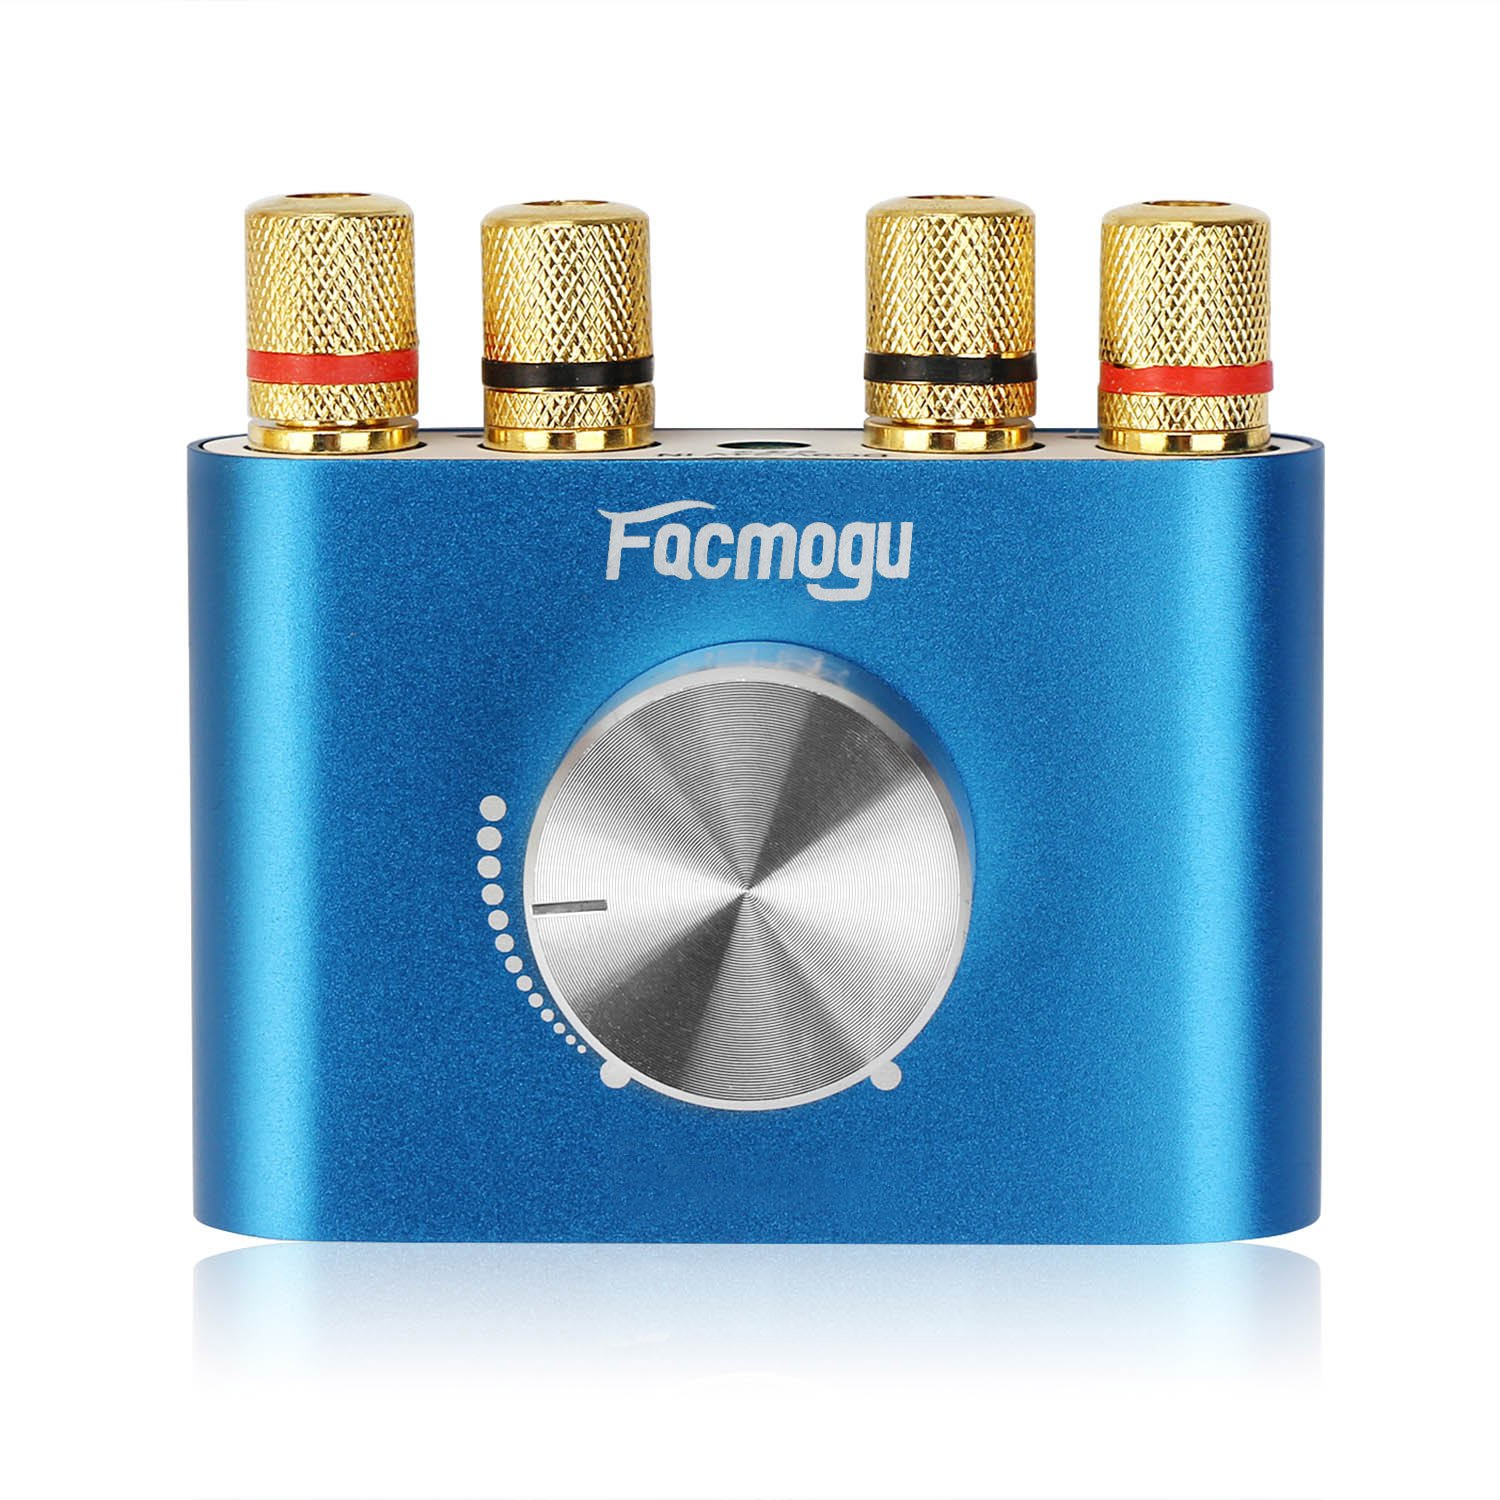 F900 Blue Audio Power Amplifier 50W + 50W, Mini Dual Channel Bluetooth 4.0 Stereo Amplifier Wireless Digital HiFi Audio Receiver DC 12V (Without Power Supply)